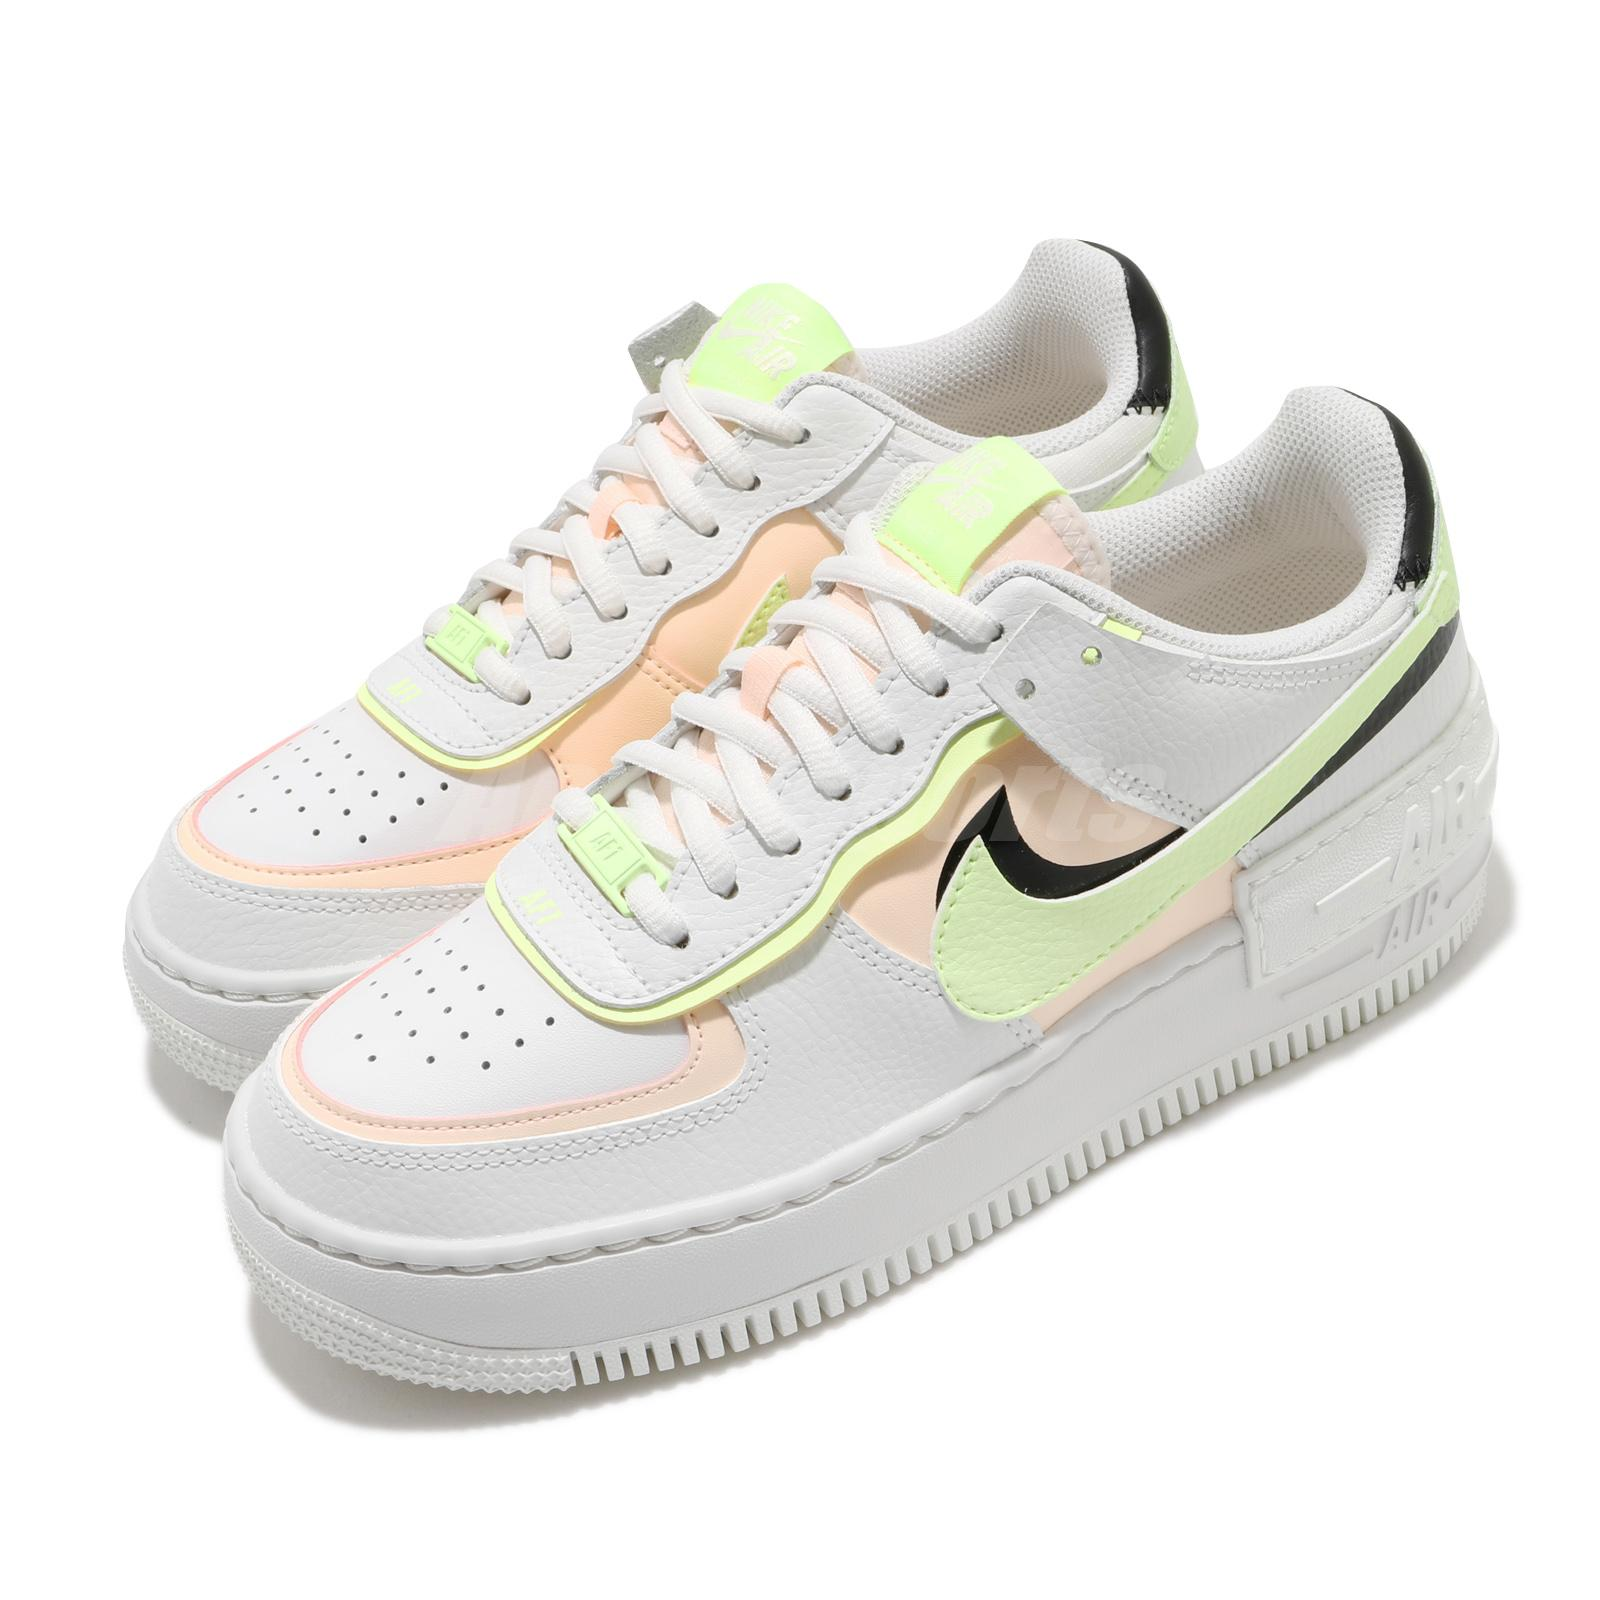 Nike Wmns Af1 Shadow Air Force 1 White Crimson Tint Barely Volt Women Ci0919 107 Ebay In this video i review a brand new model from nike, the nike air force 1 shadow. details about nike wmns af1 shadow air force 1 white crimson tint barely volt women ci0919 107